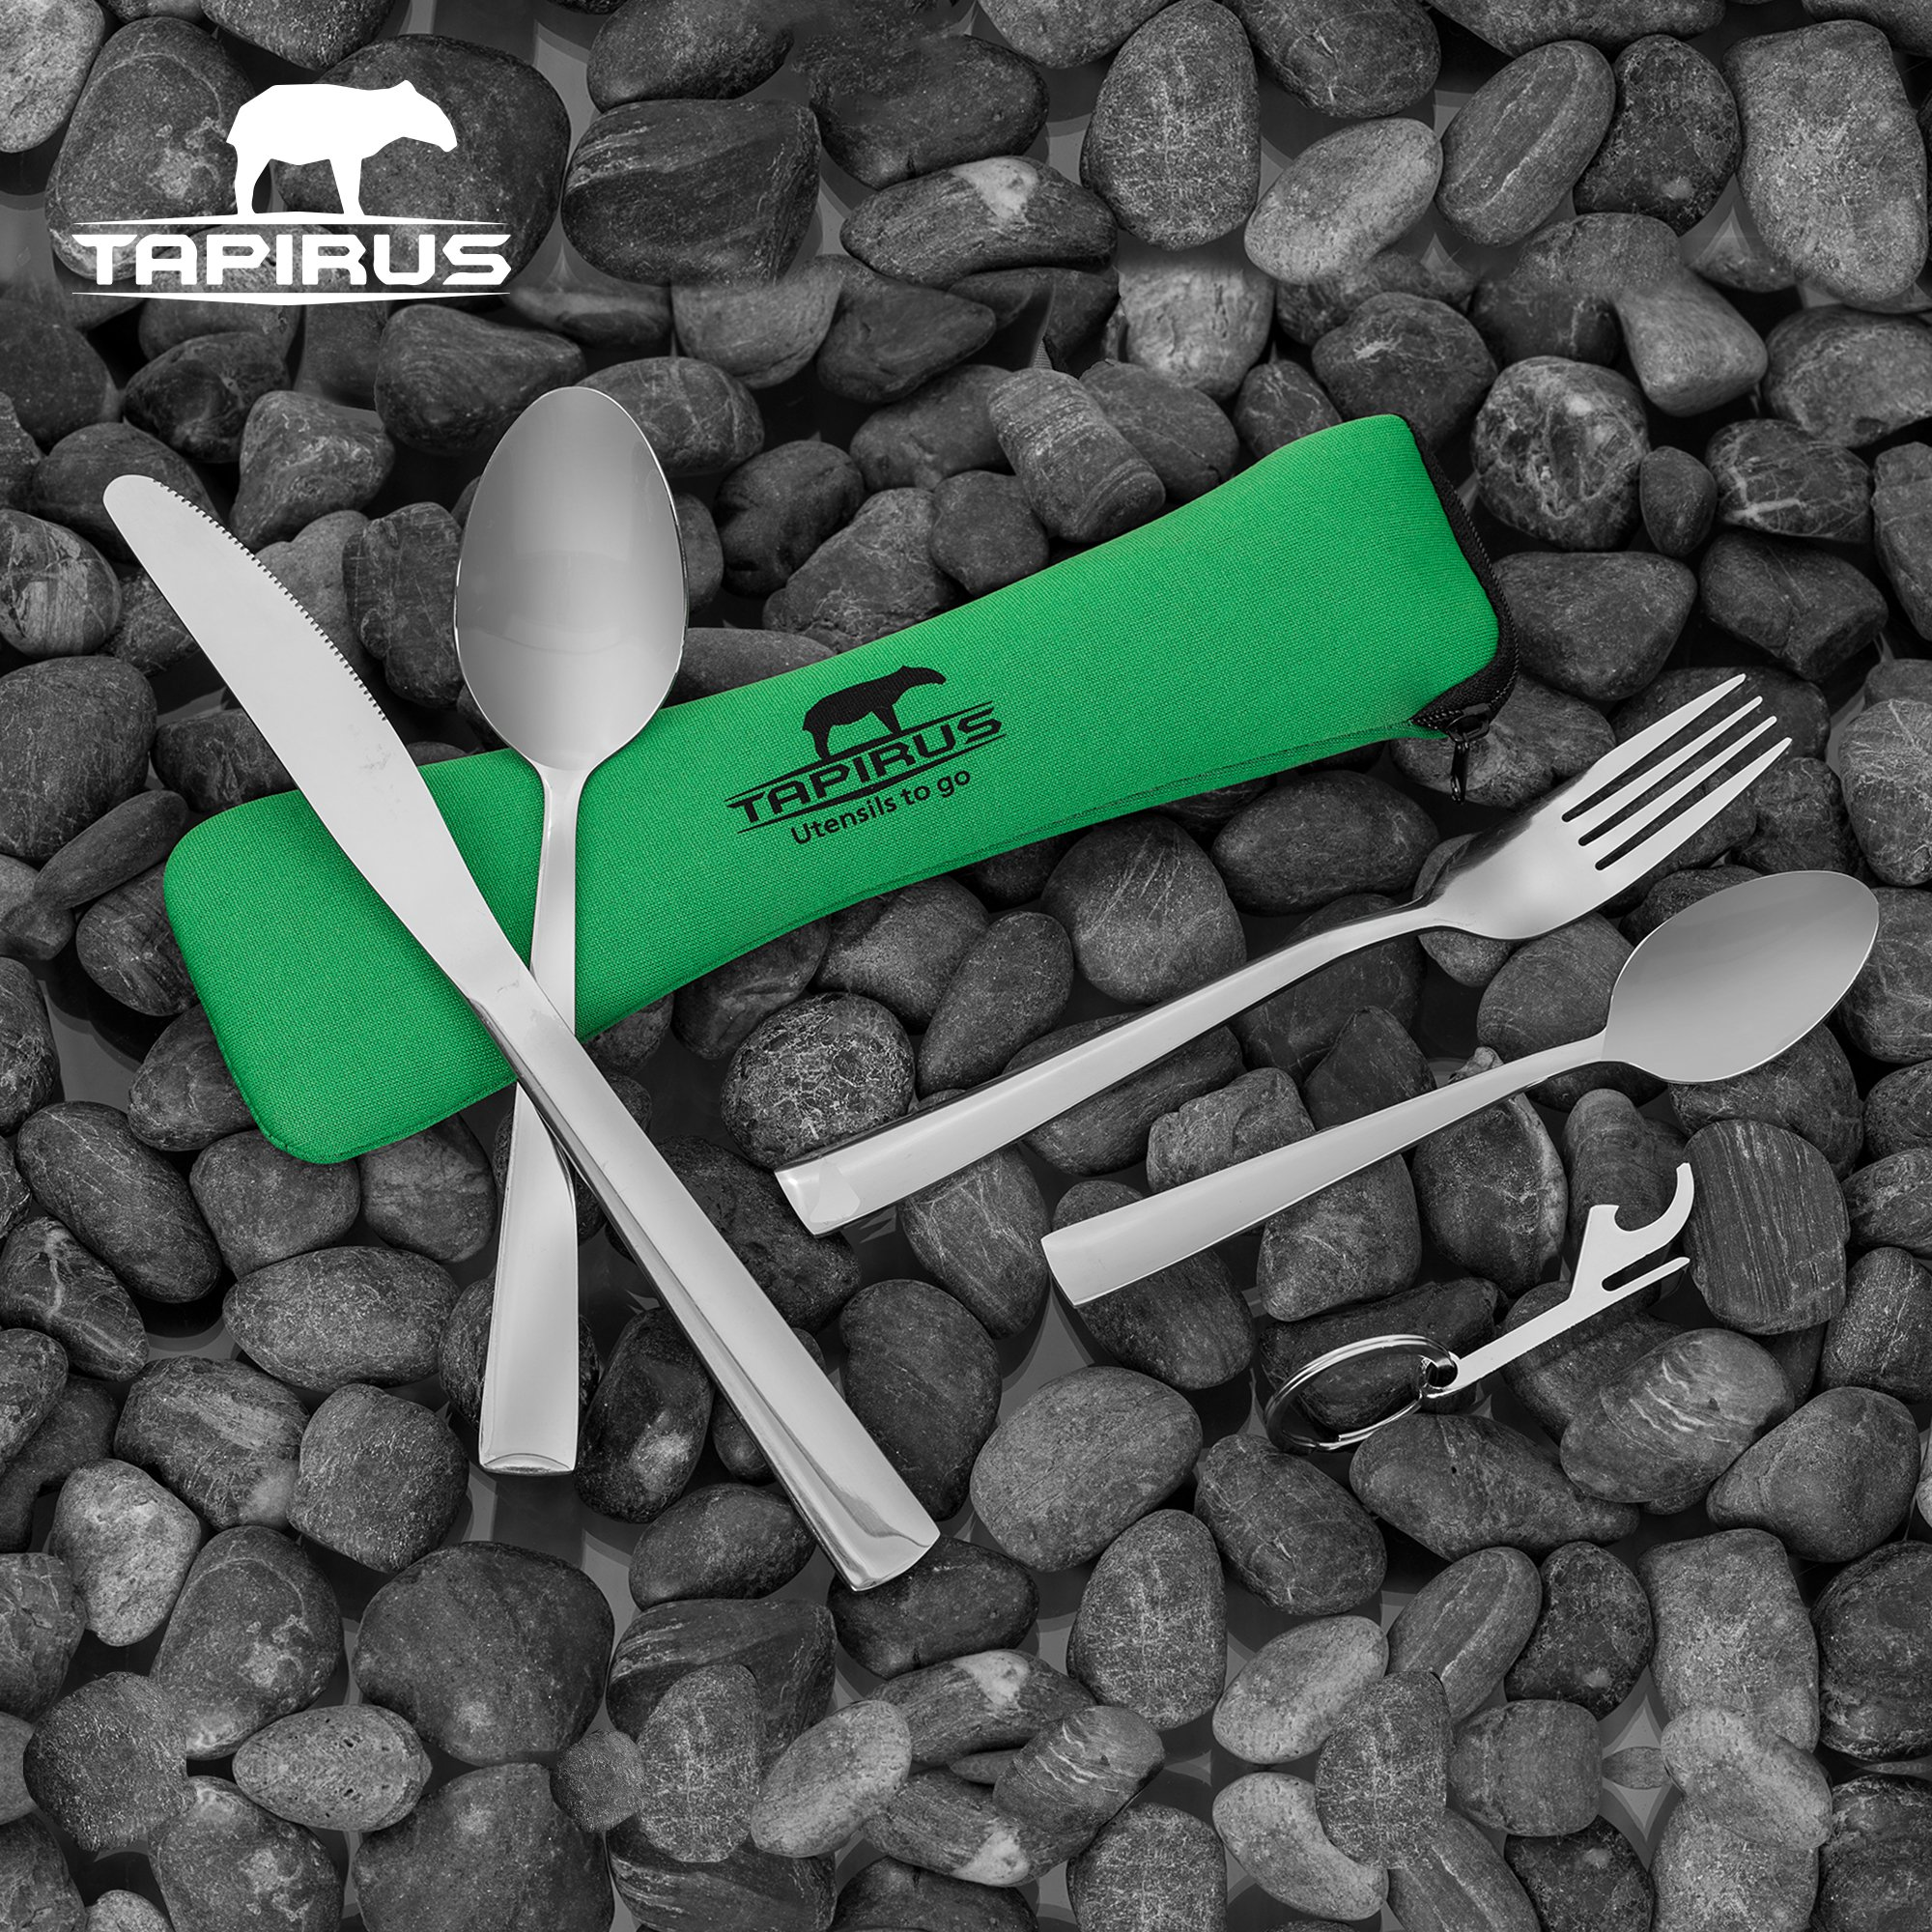 Tapirus Camping Eating Utensils To Go   Durable Stainless Steel Lightweight Construction Flatware   Travel Mess Cutlery Kit With Spoon, Teaspoon, Knife, Fork & Bottle Opener   Comes In A Carrying Case by Tapirus (Image #8)